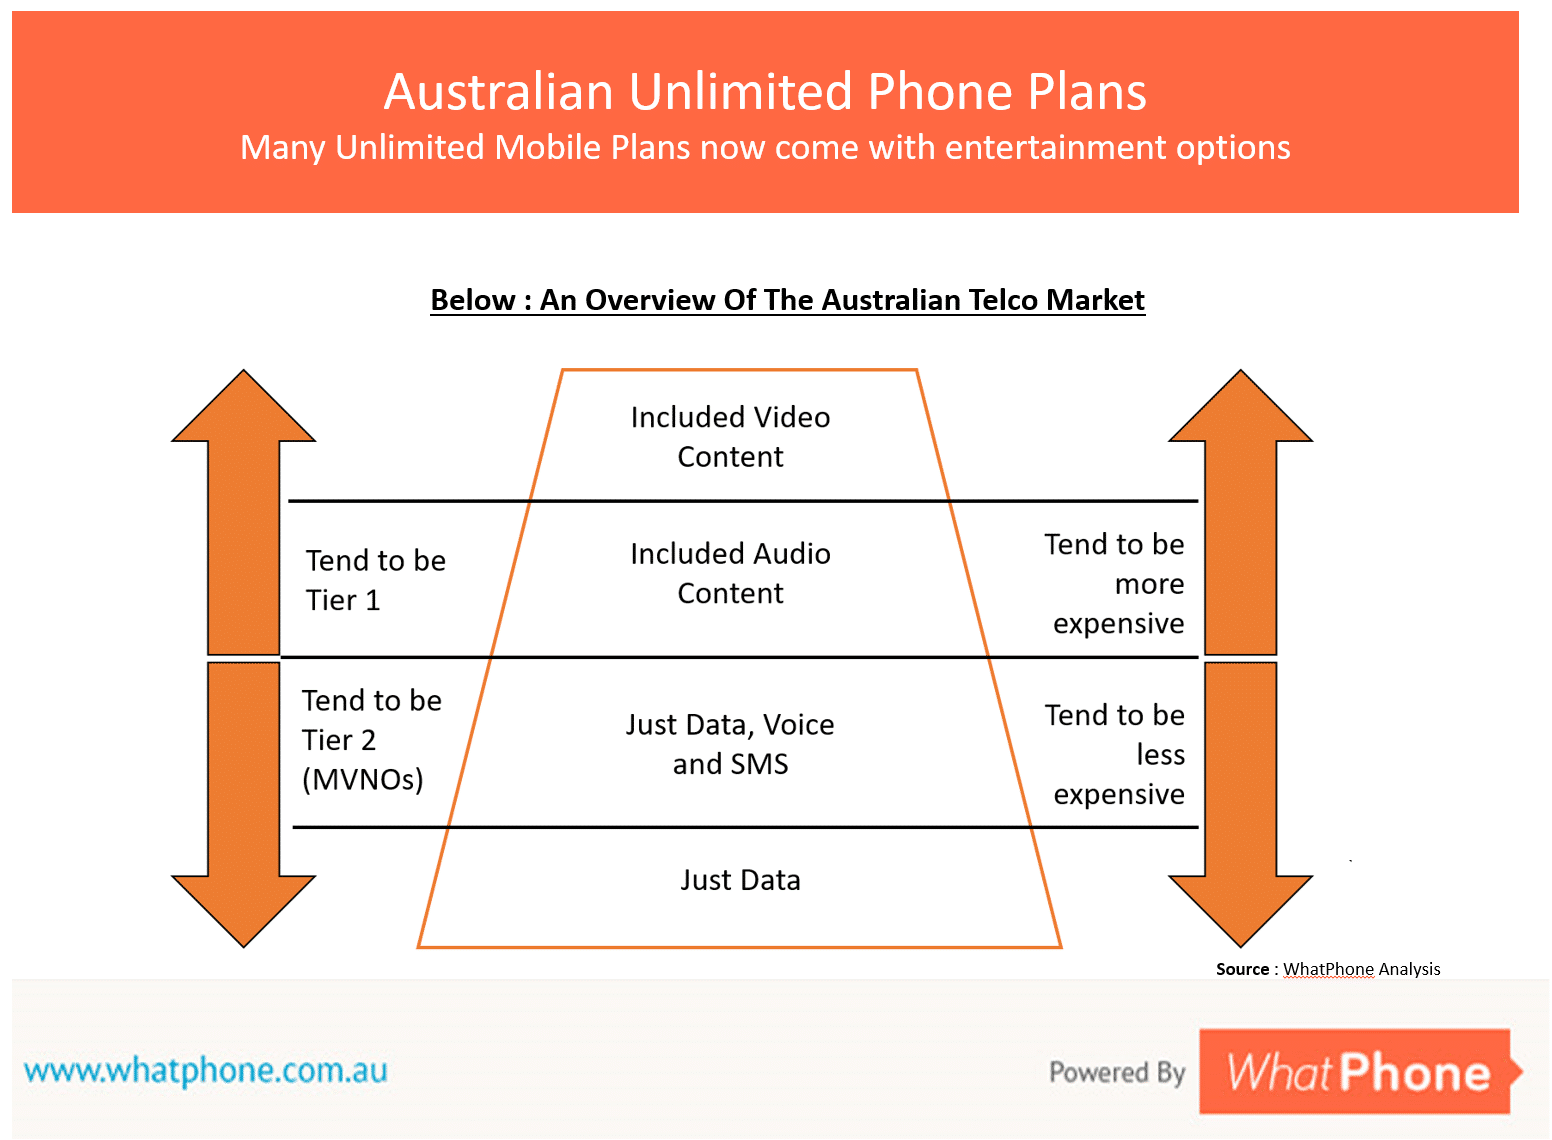 This chart shows one way of representing the Australian market for phone plans. Some of the higher cost unlimited plans available to you come with included ('data free') entertainment services. We explore those here.